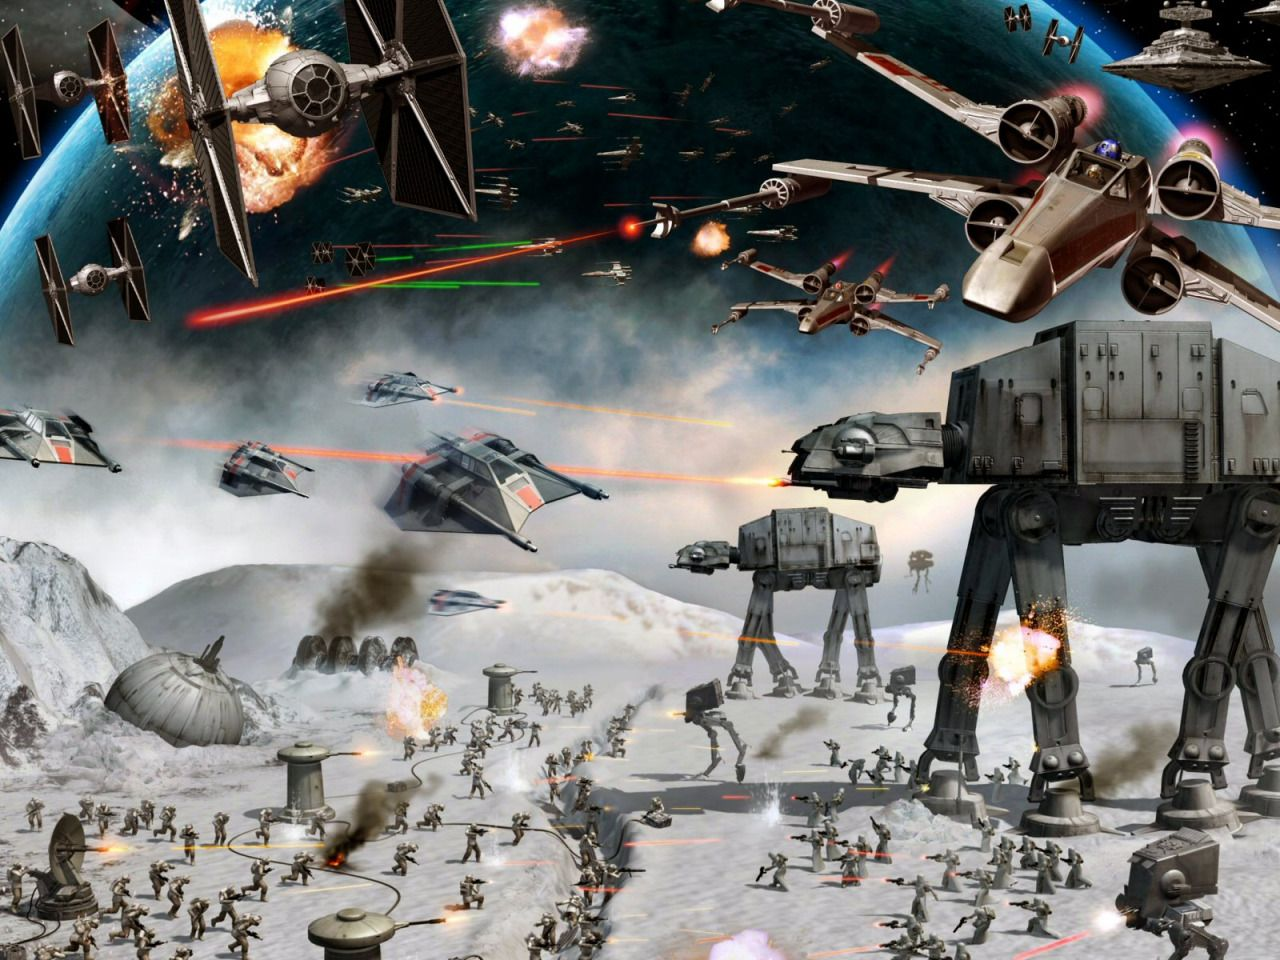 Star Wars Wallpaper Star Wars Wallpaper Star Wars Movies Posters Wallpaper Backgrounds